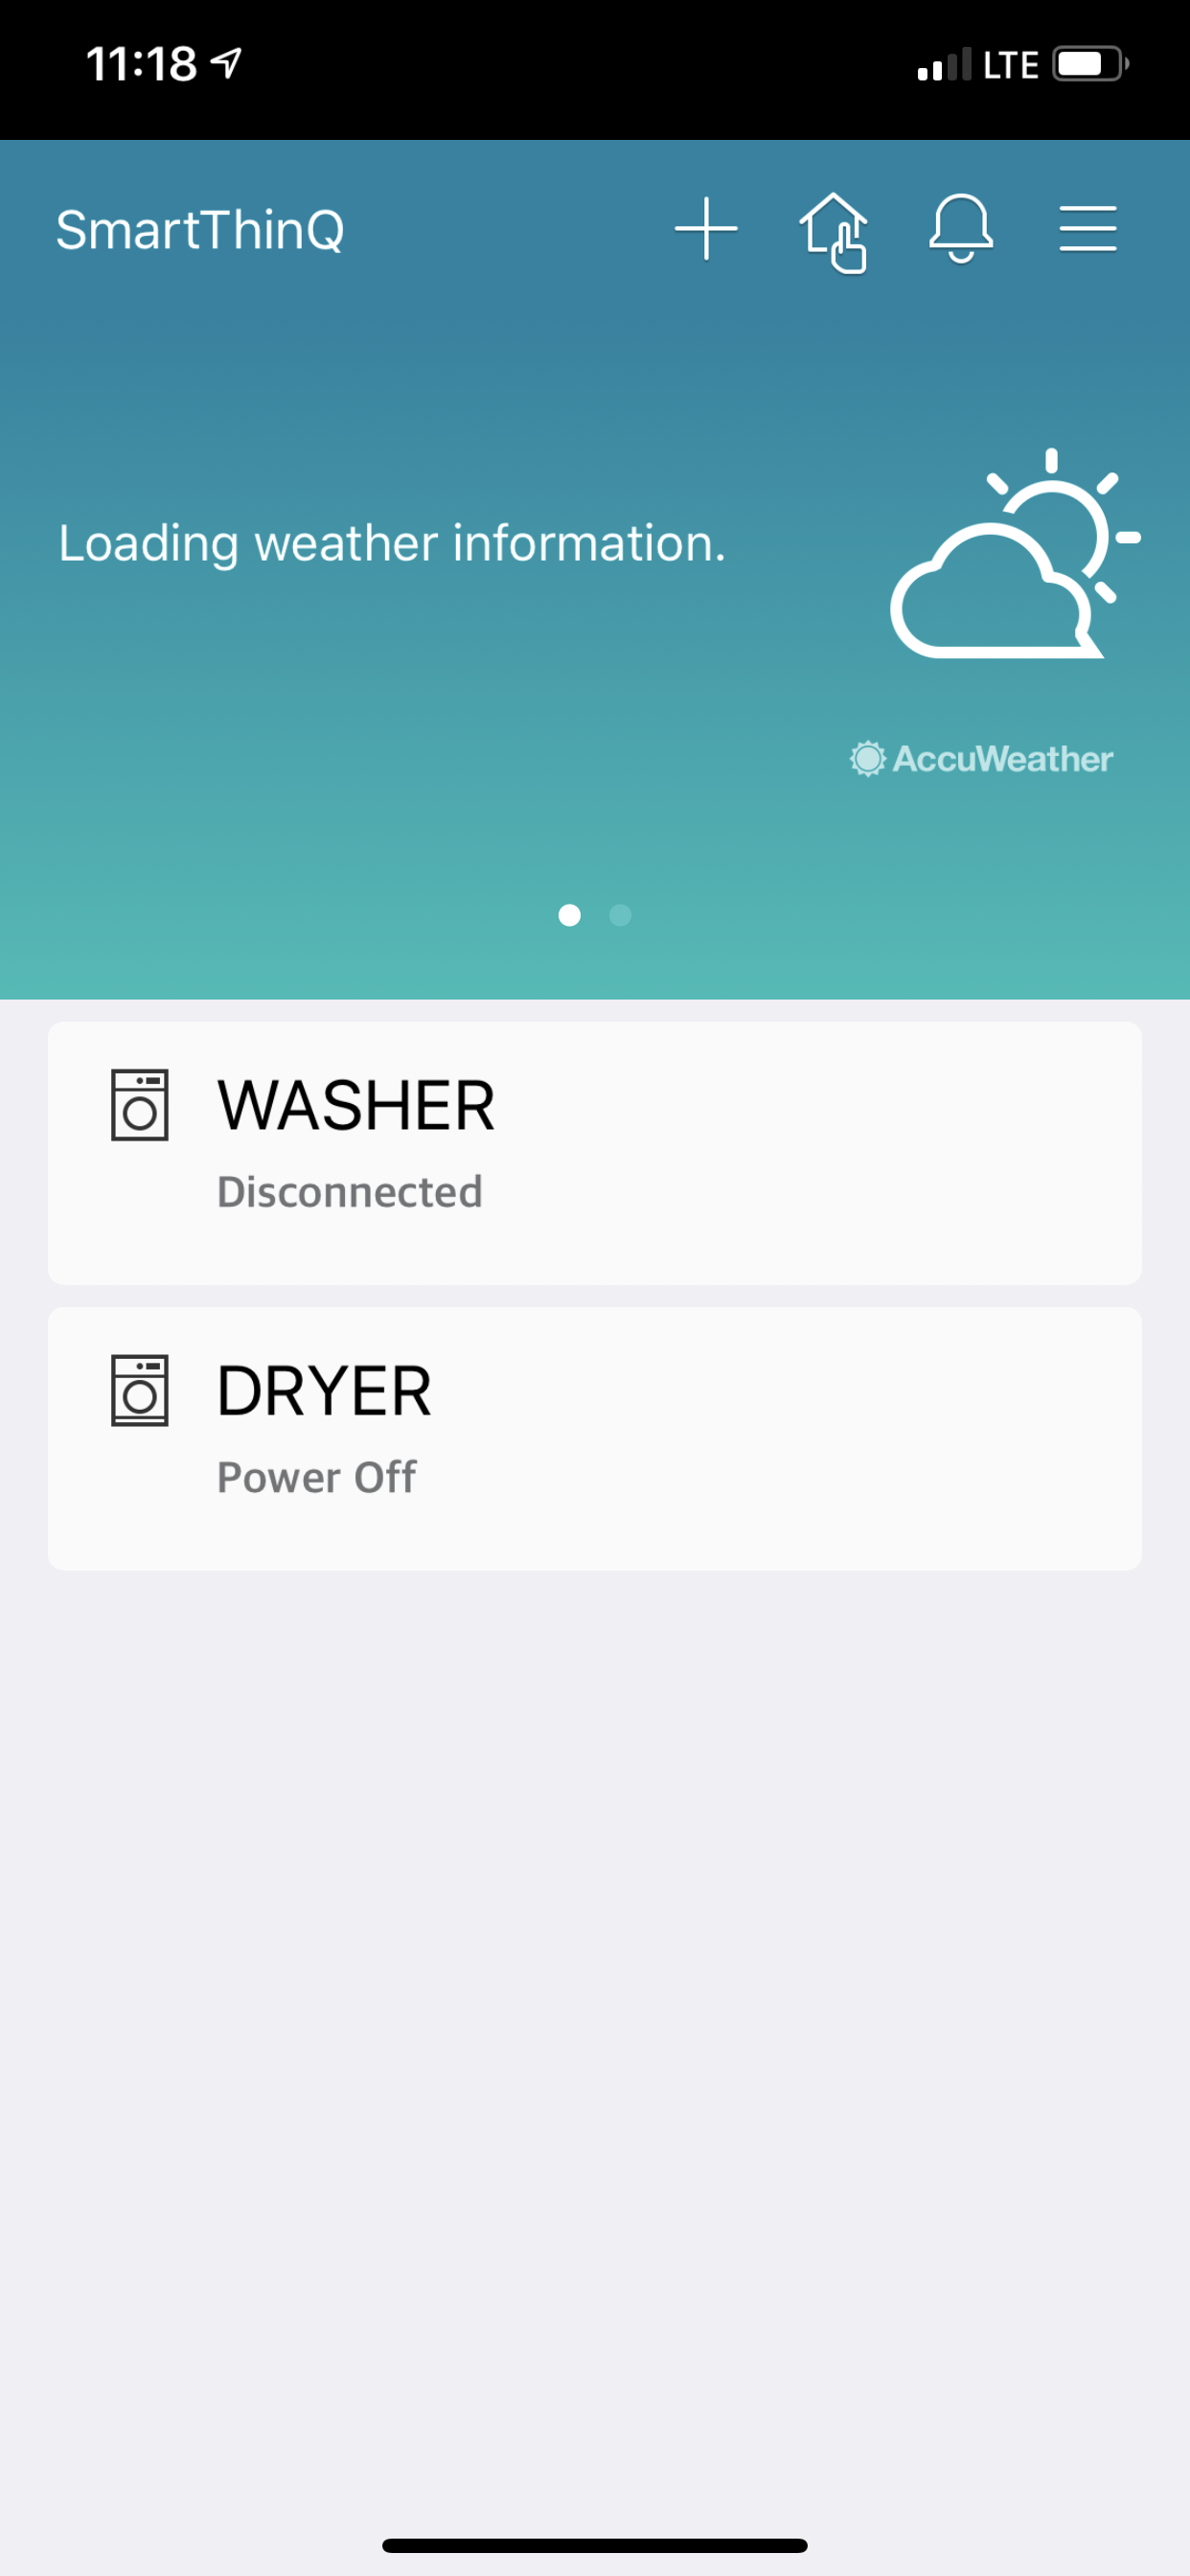 Washer shows as disconnected in summary page of app — LG - Ask the